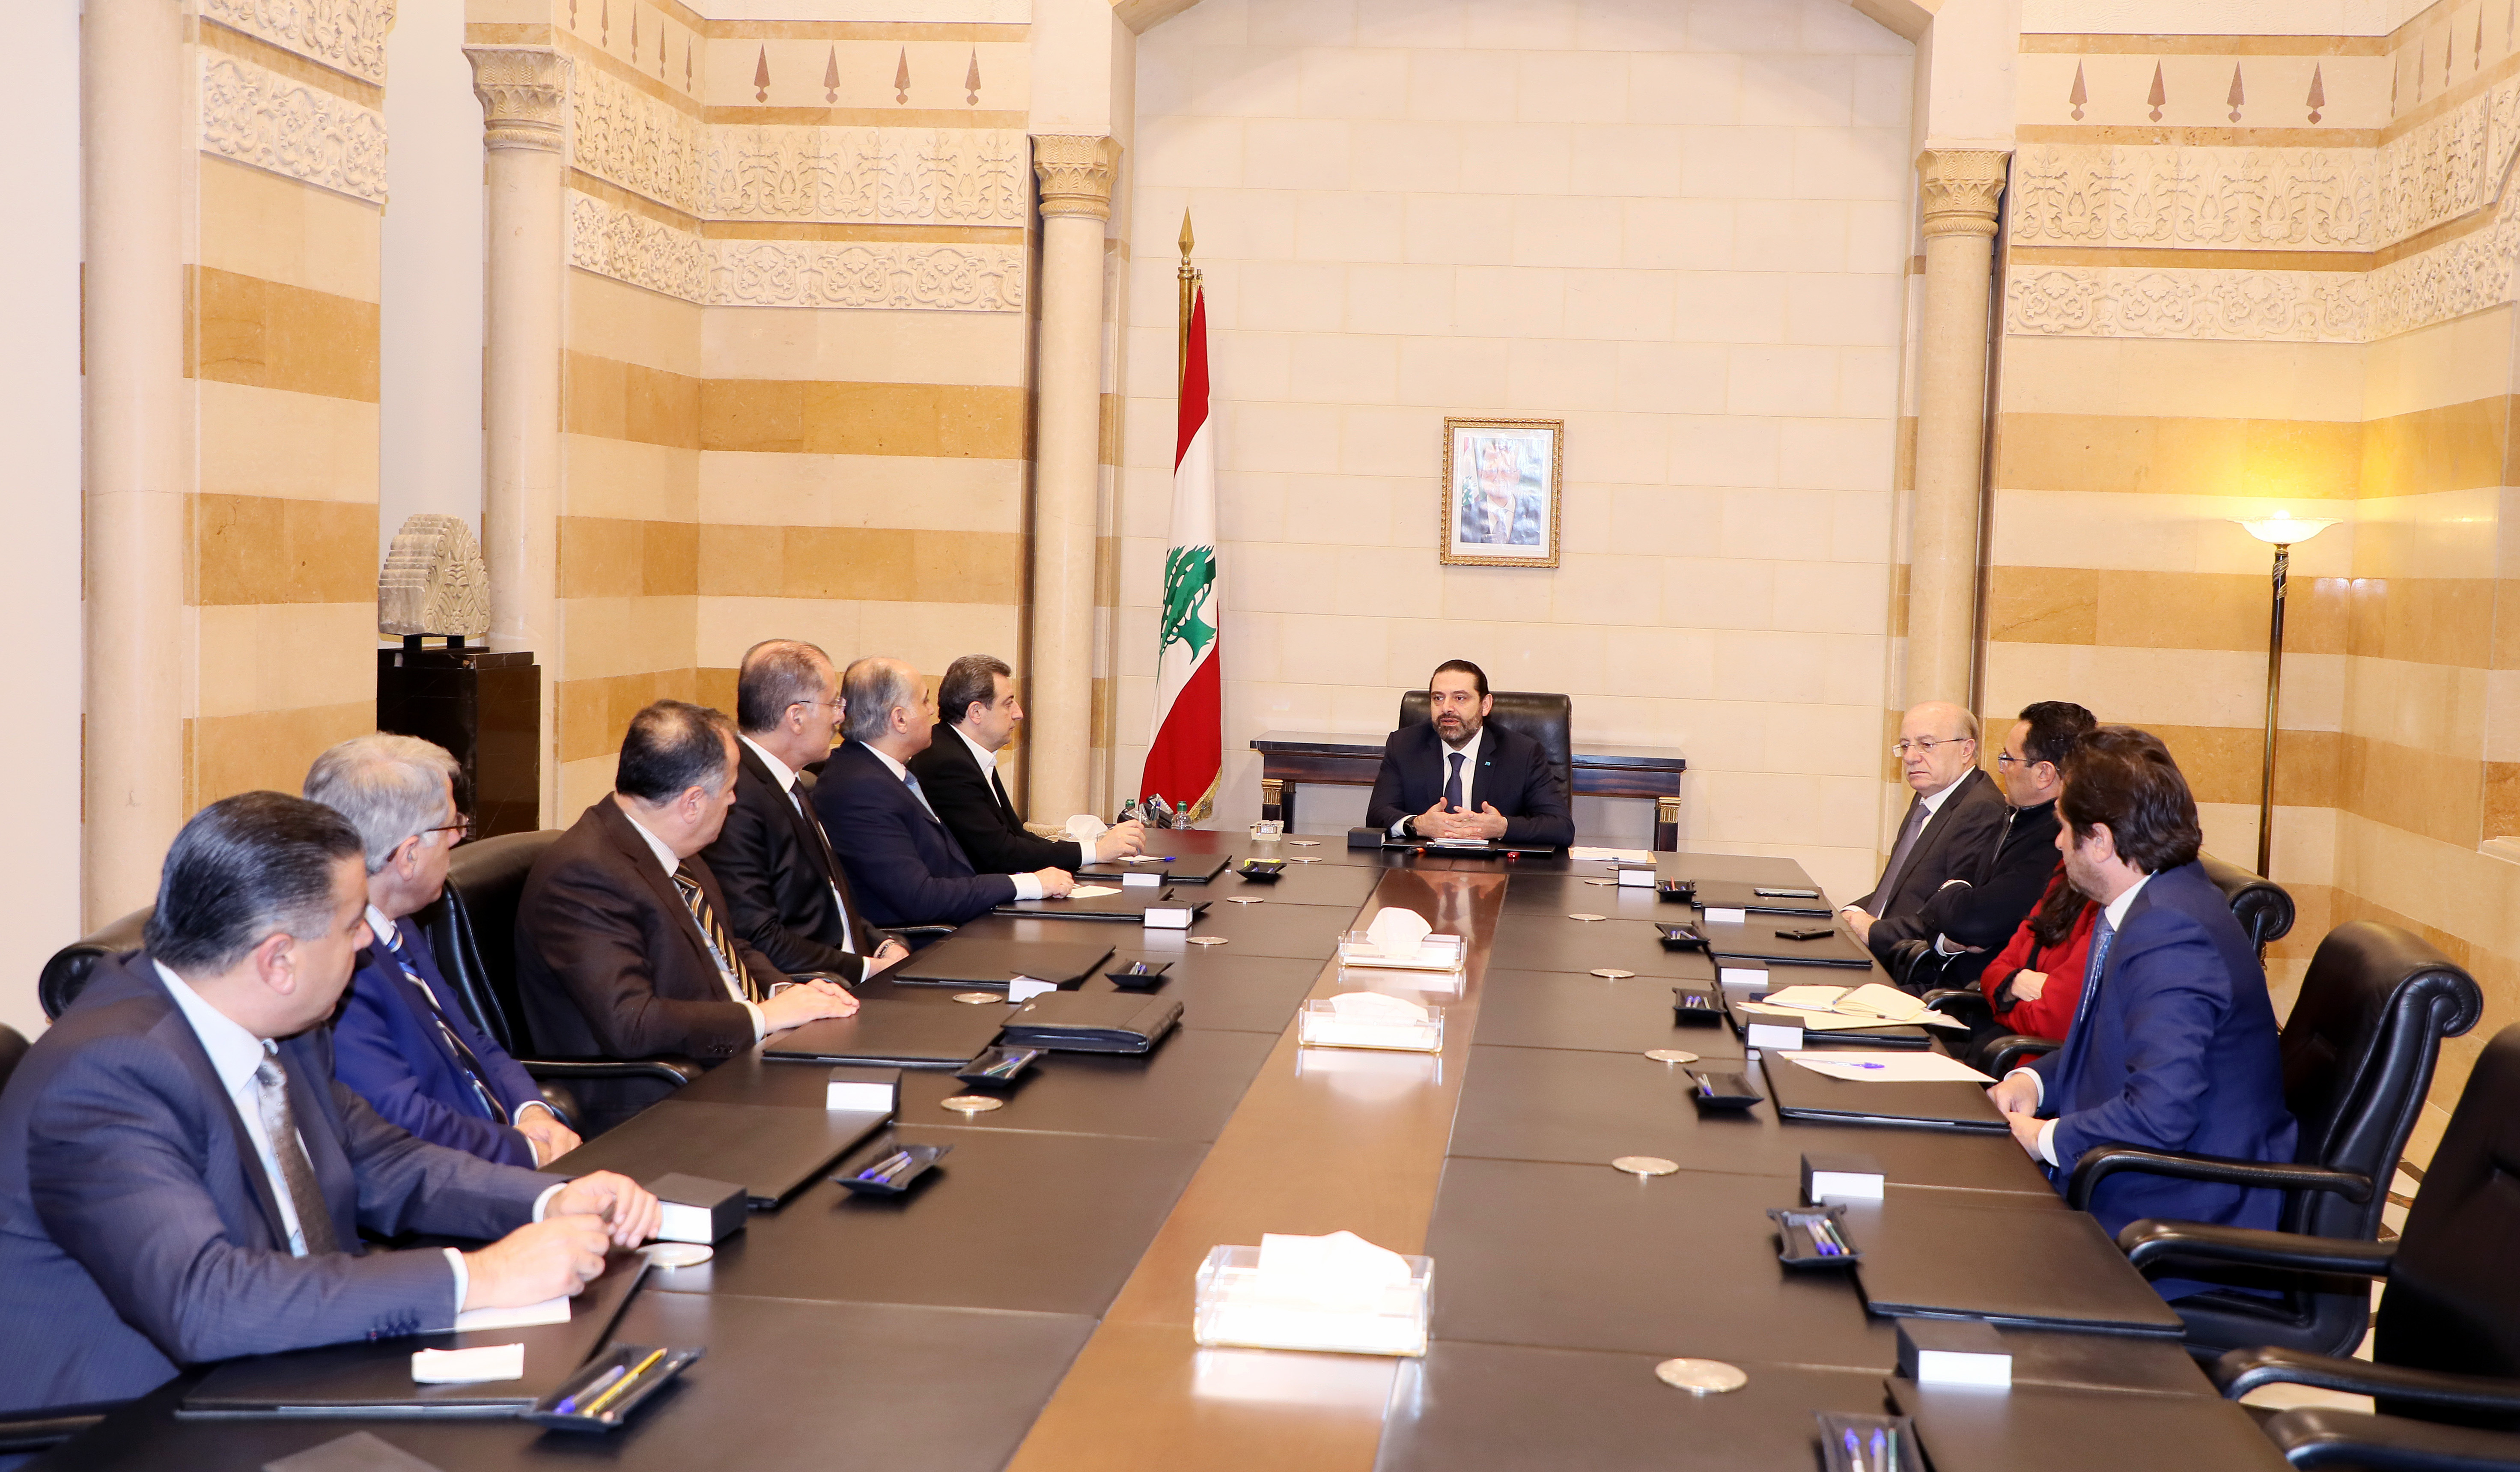 Pr Minister Saad Hariri meets Minister Wael Abou Faour with a Delegation